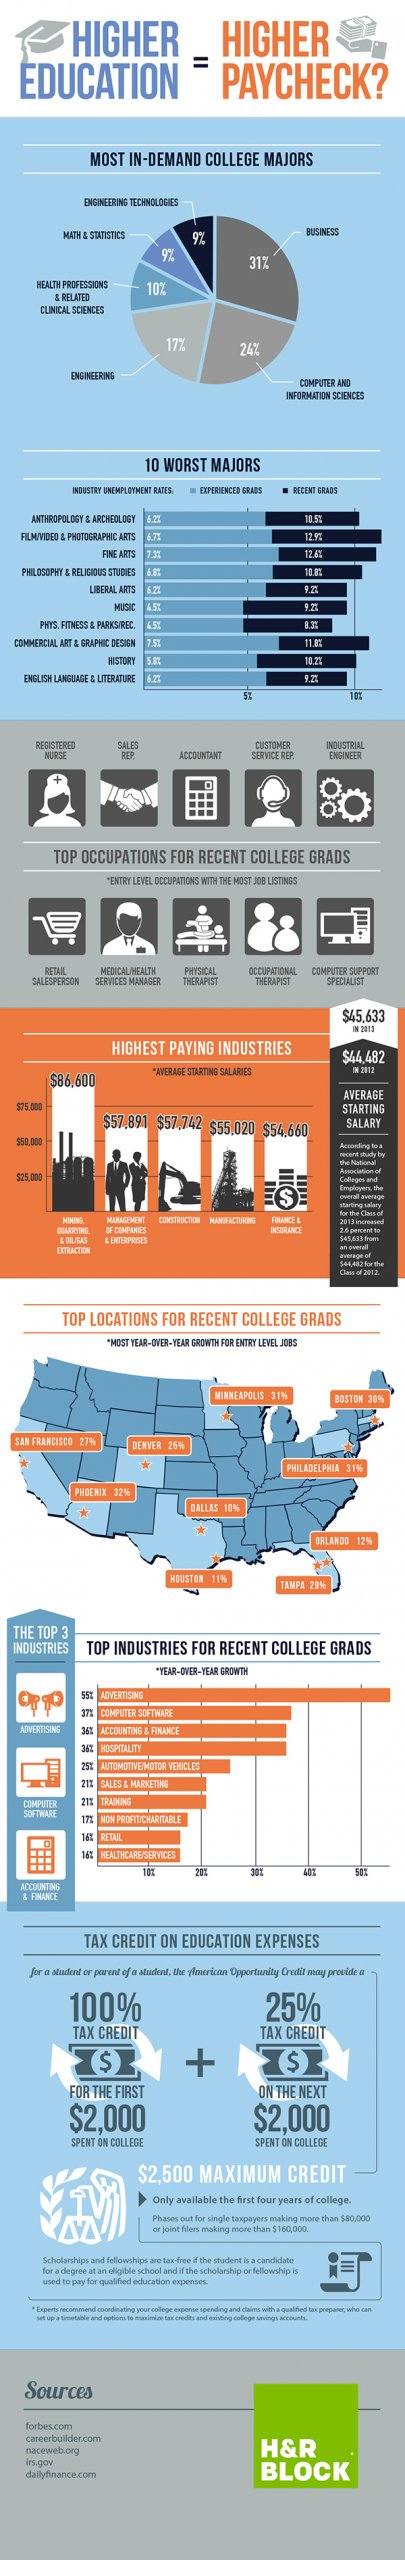 info graphic - higher education with best and worst majors for post grad employment